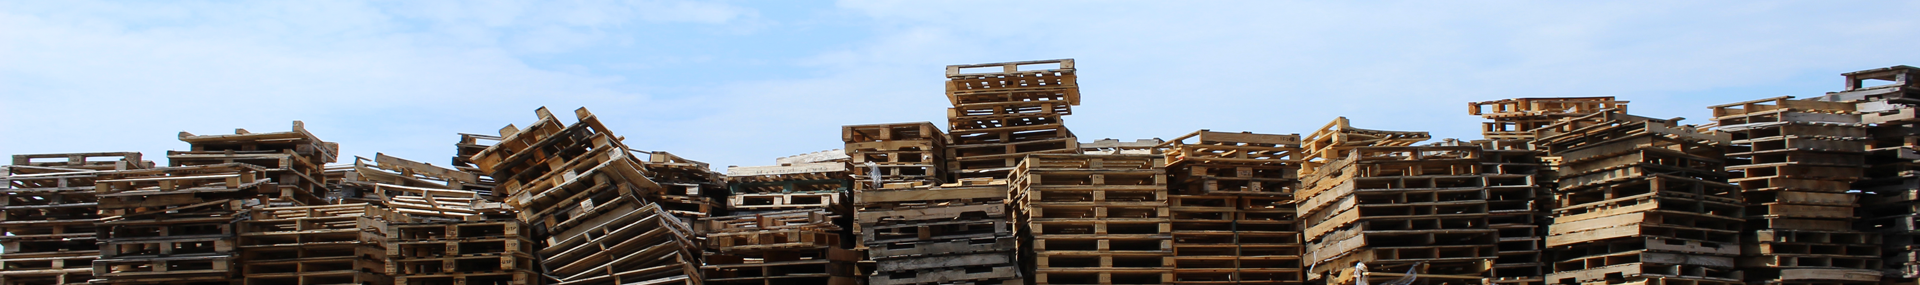 Avenel Pallet offers new and used pallets in NJ.